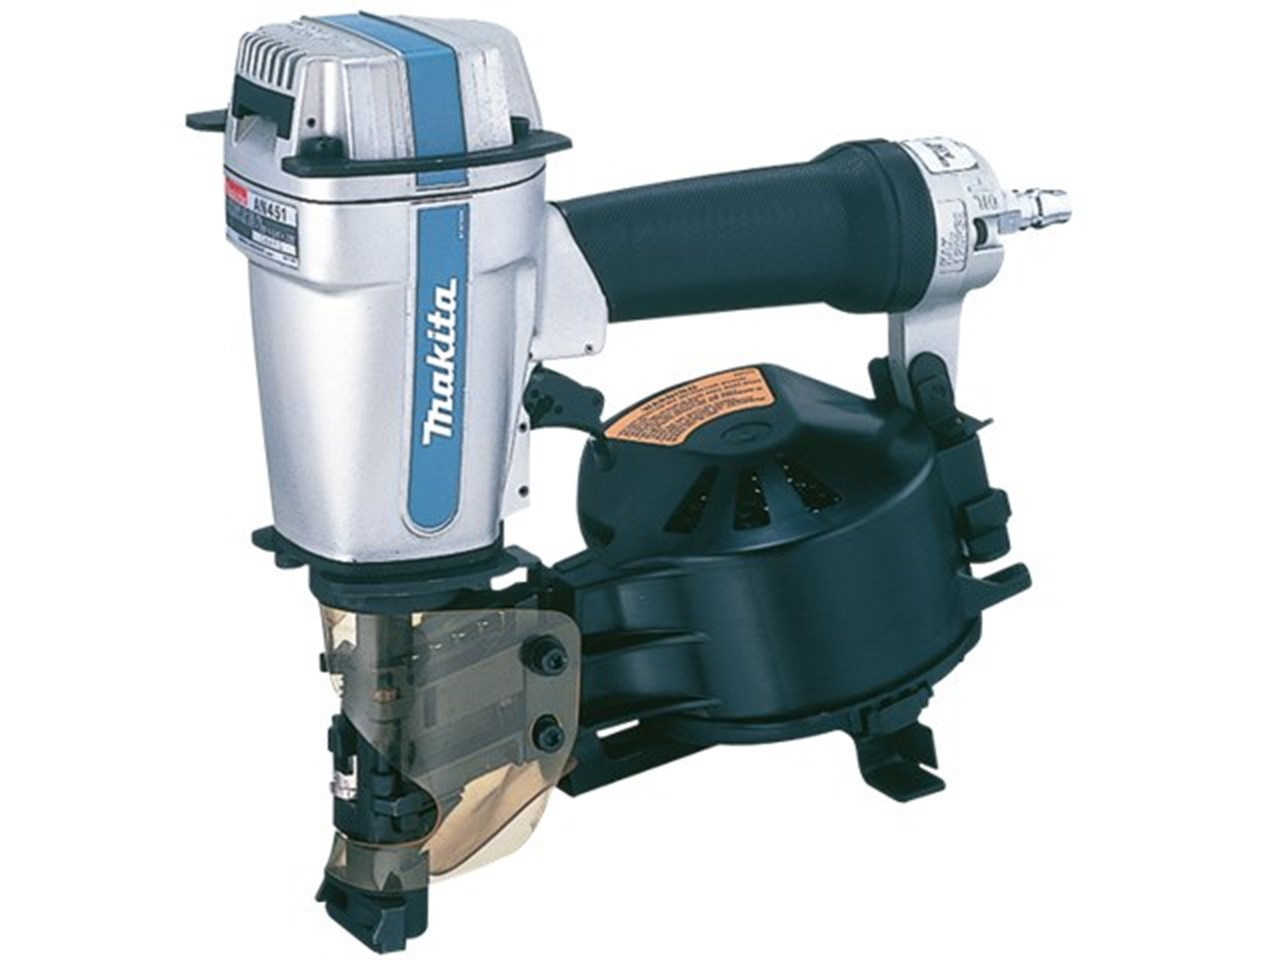 Makita An451 25mm 45mm Air Roofing Coil Nailer